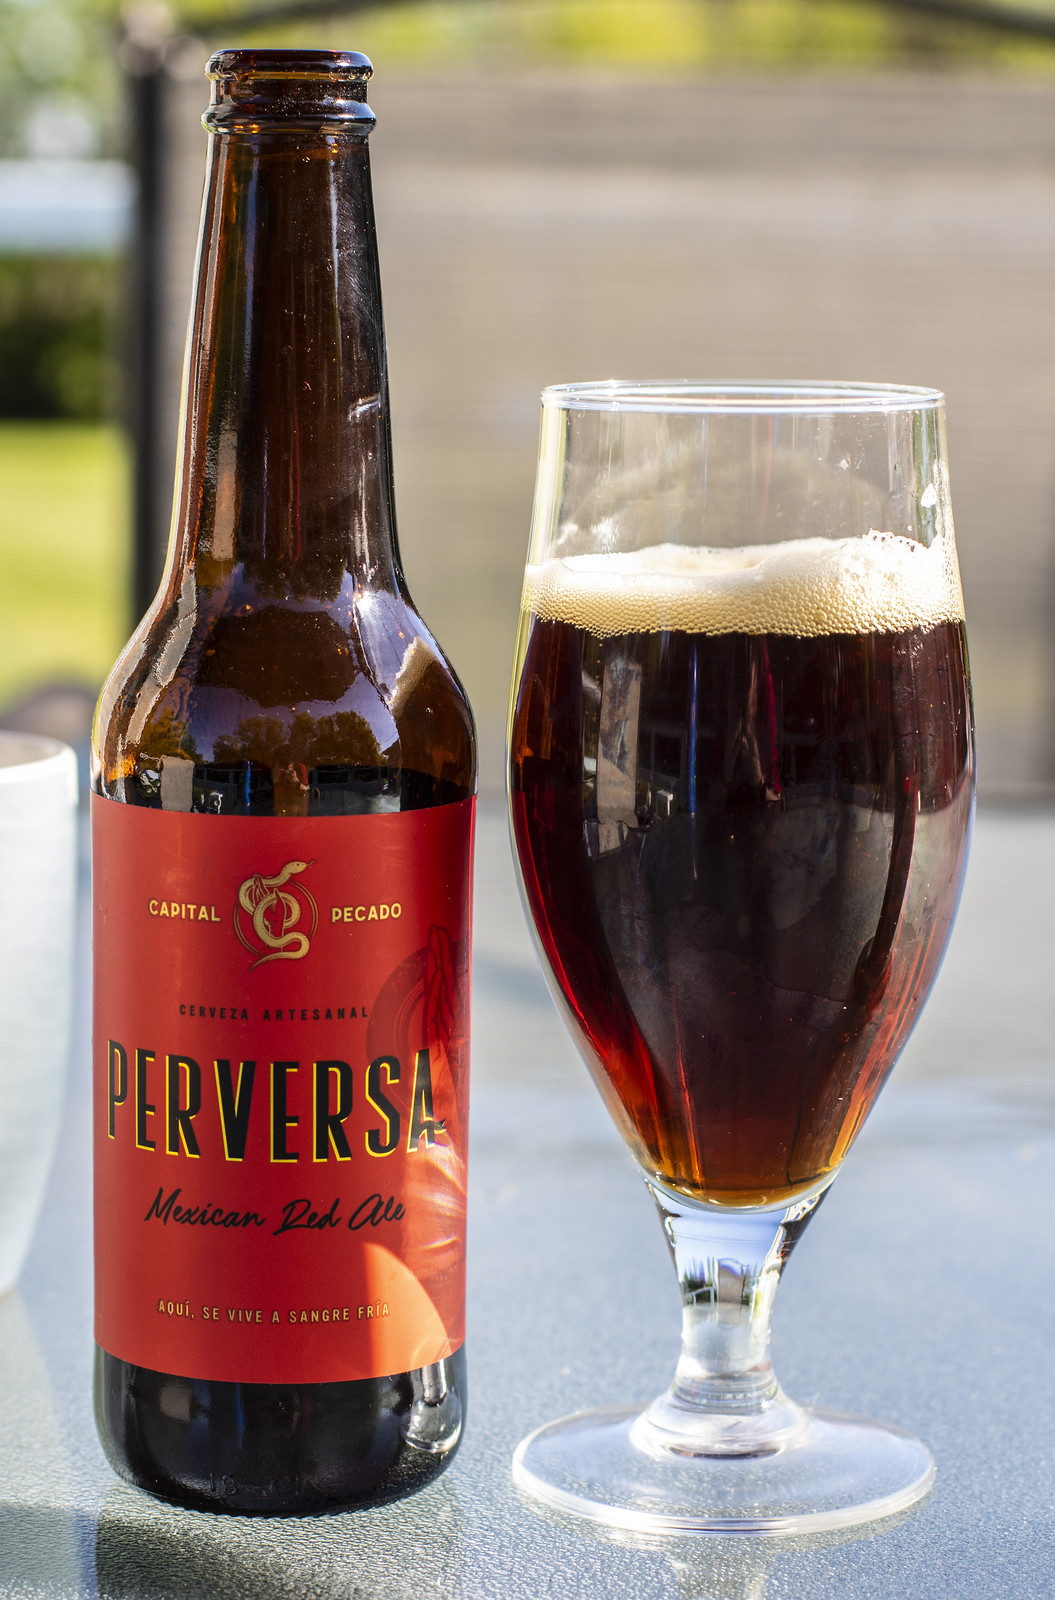 Perversa Mexican Red Ale